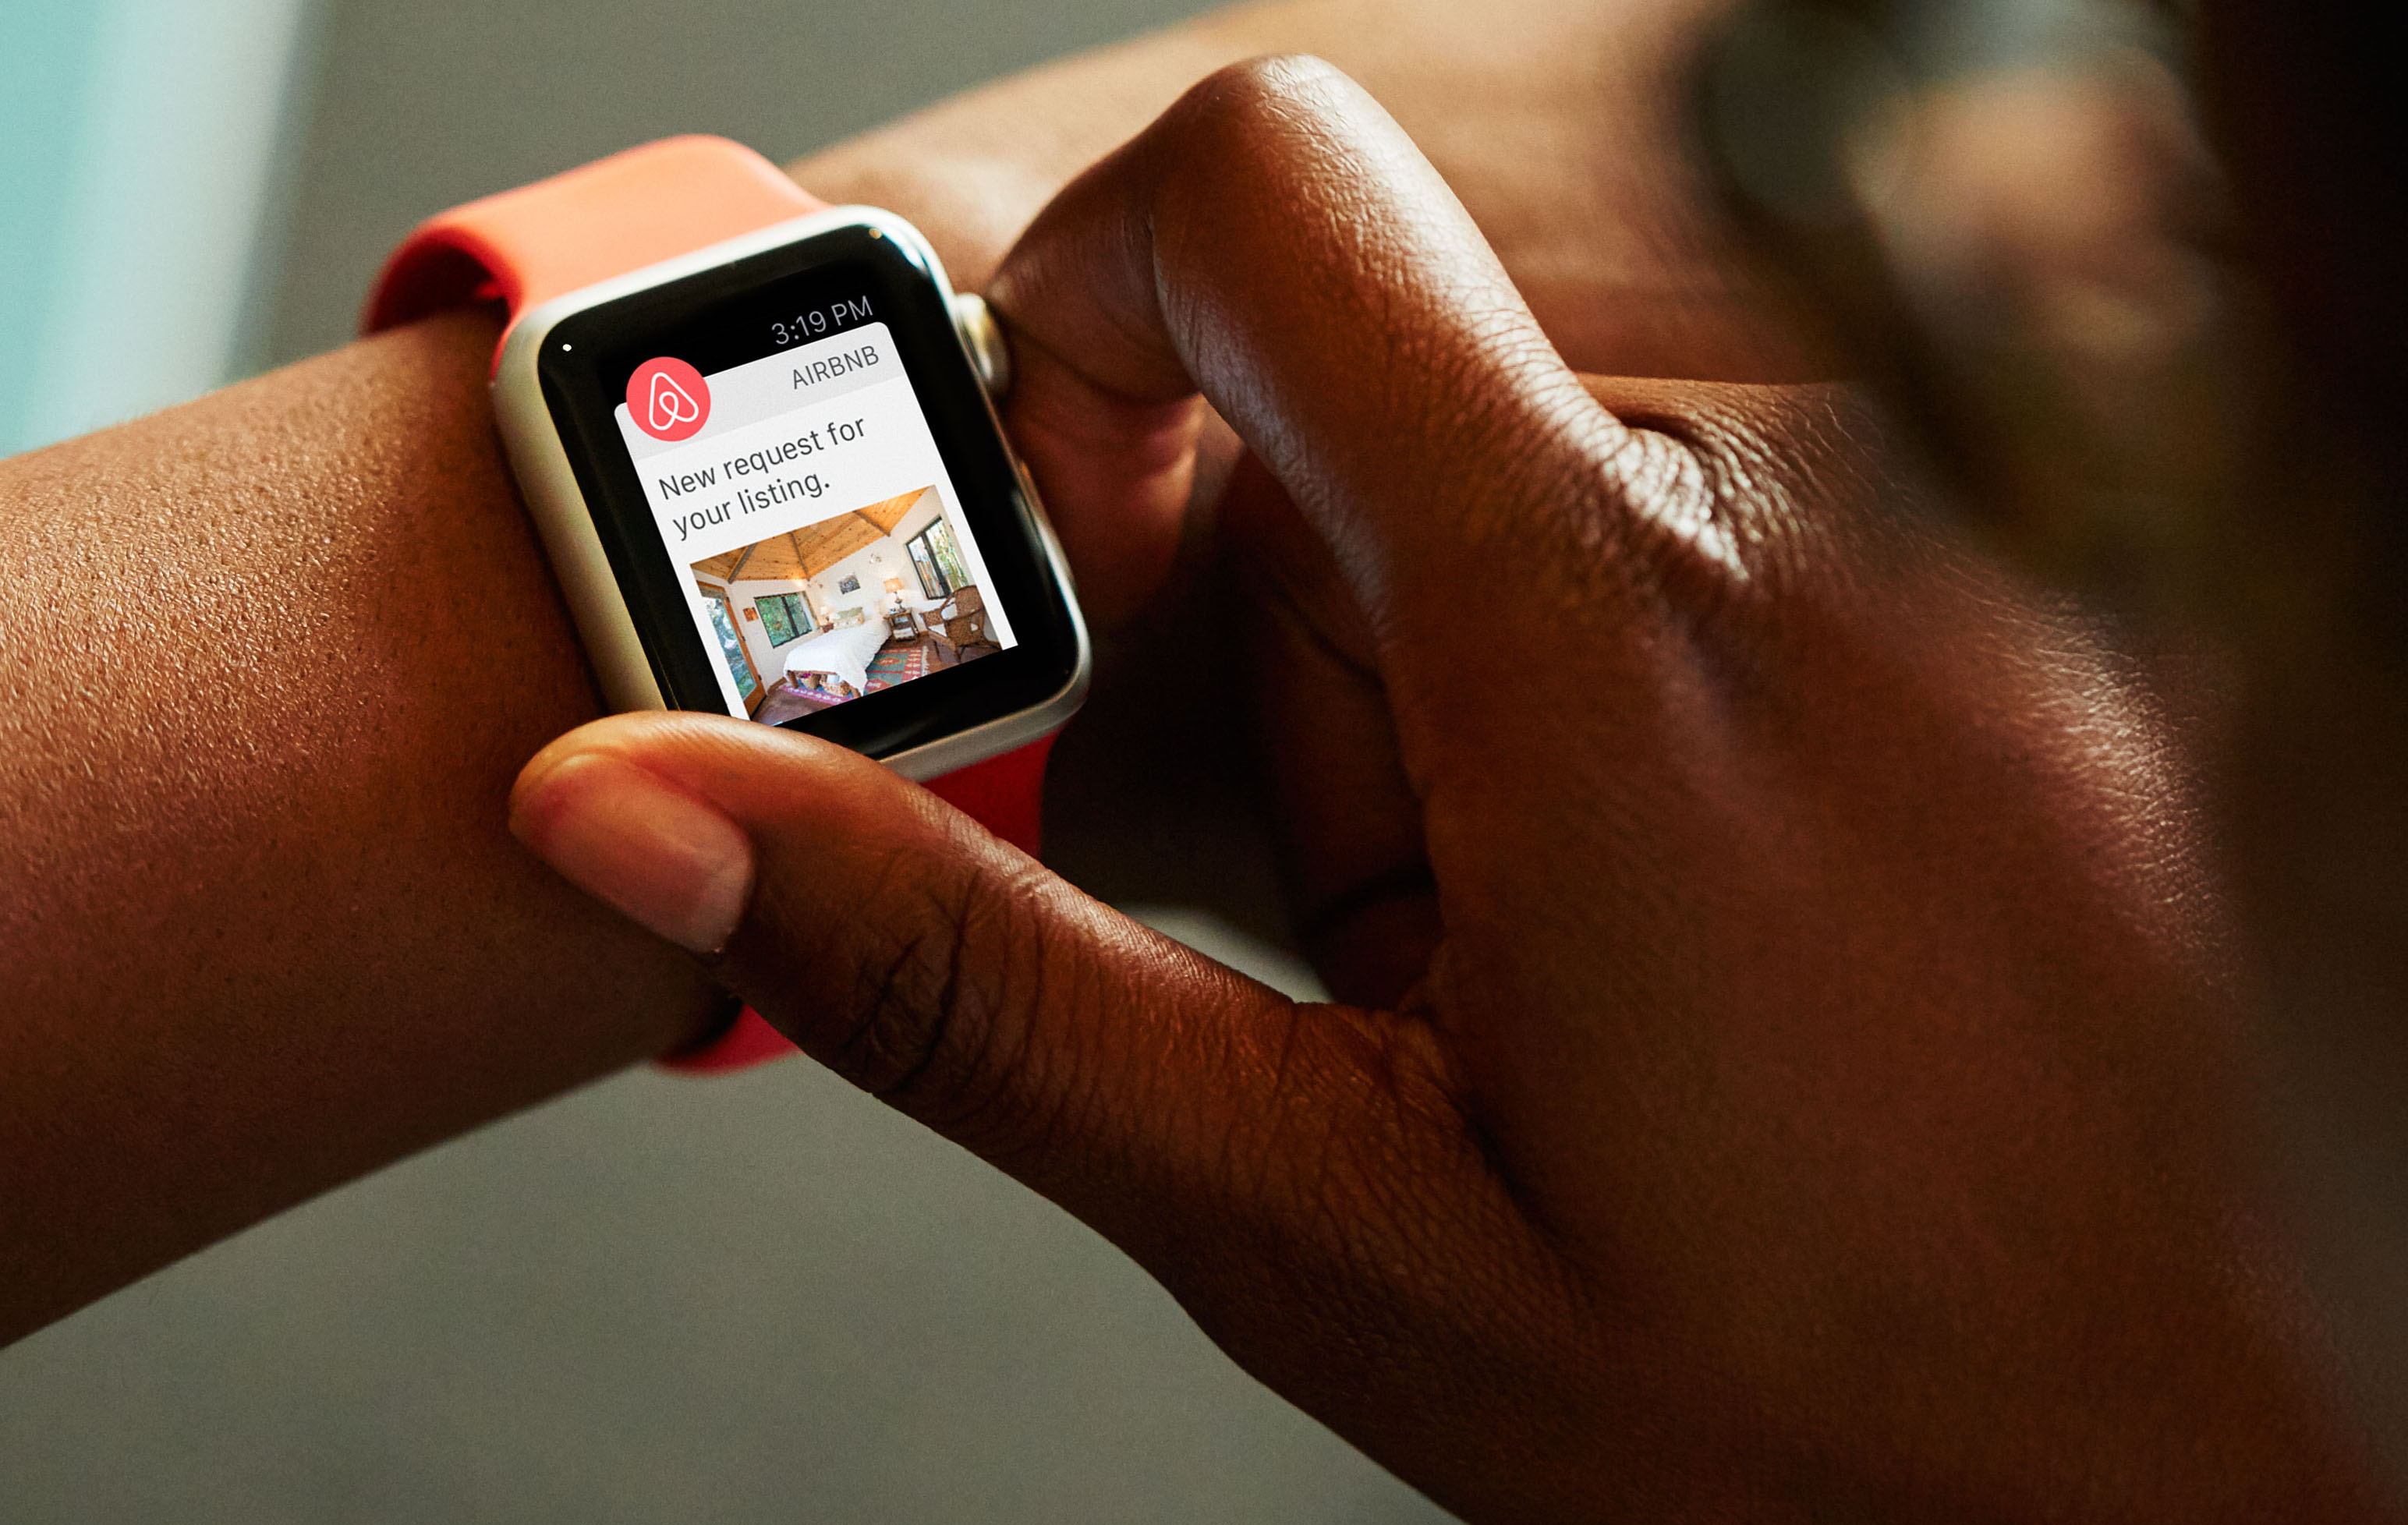 Airbnb's Apple Watch app focuses on putting hosts and guests in touch